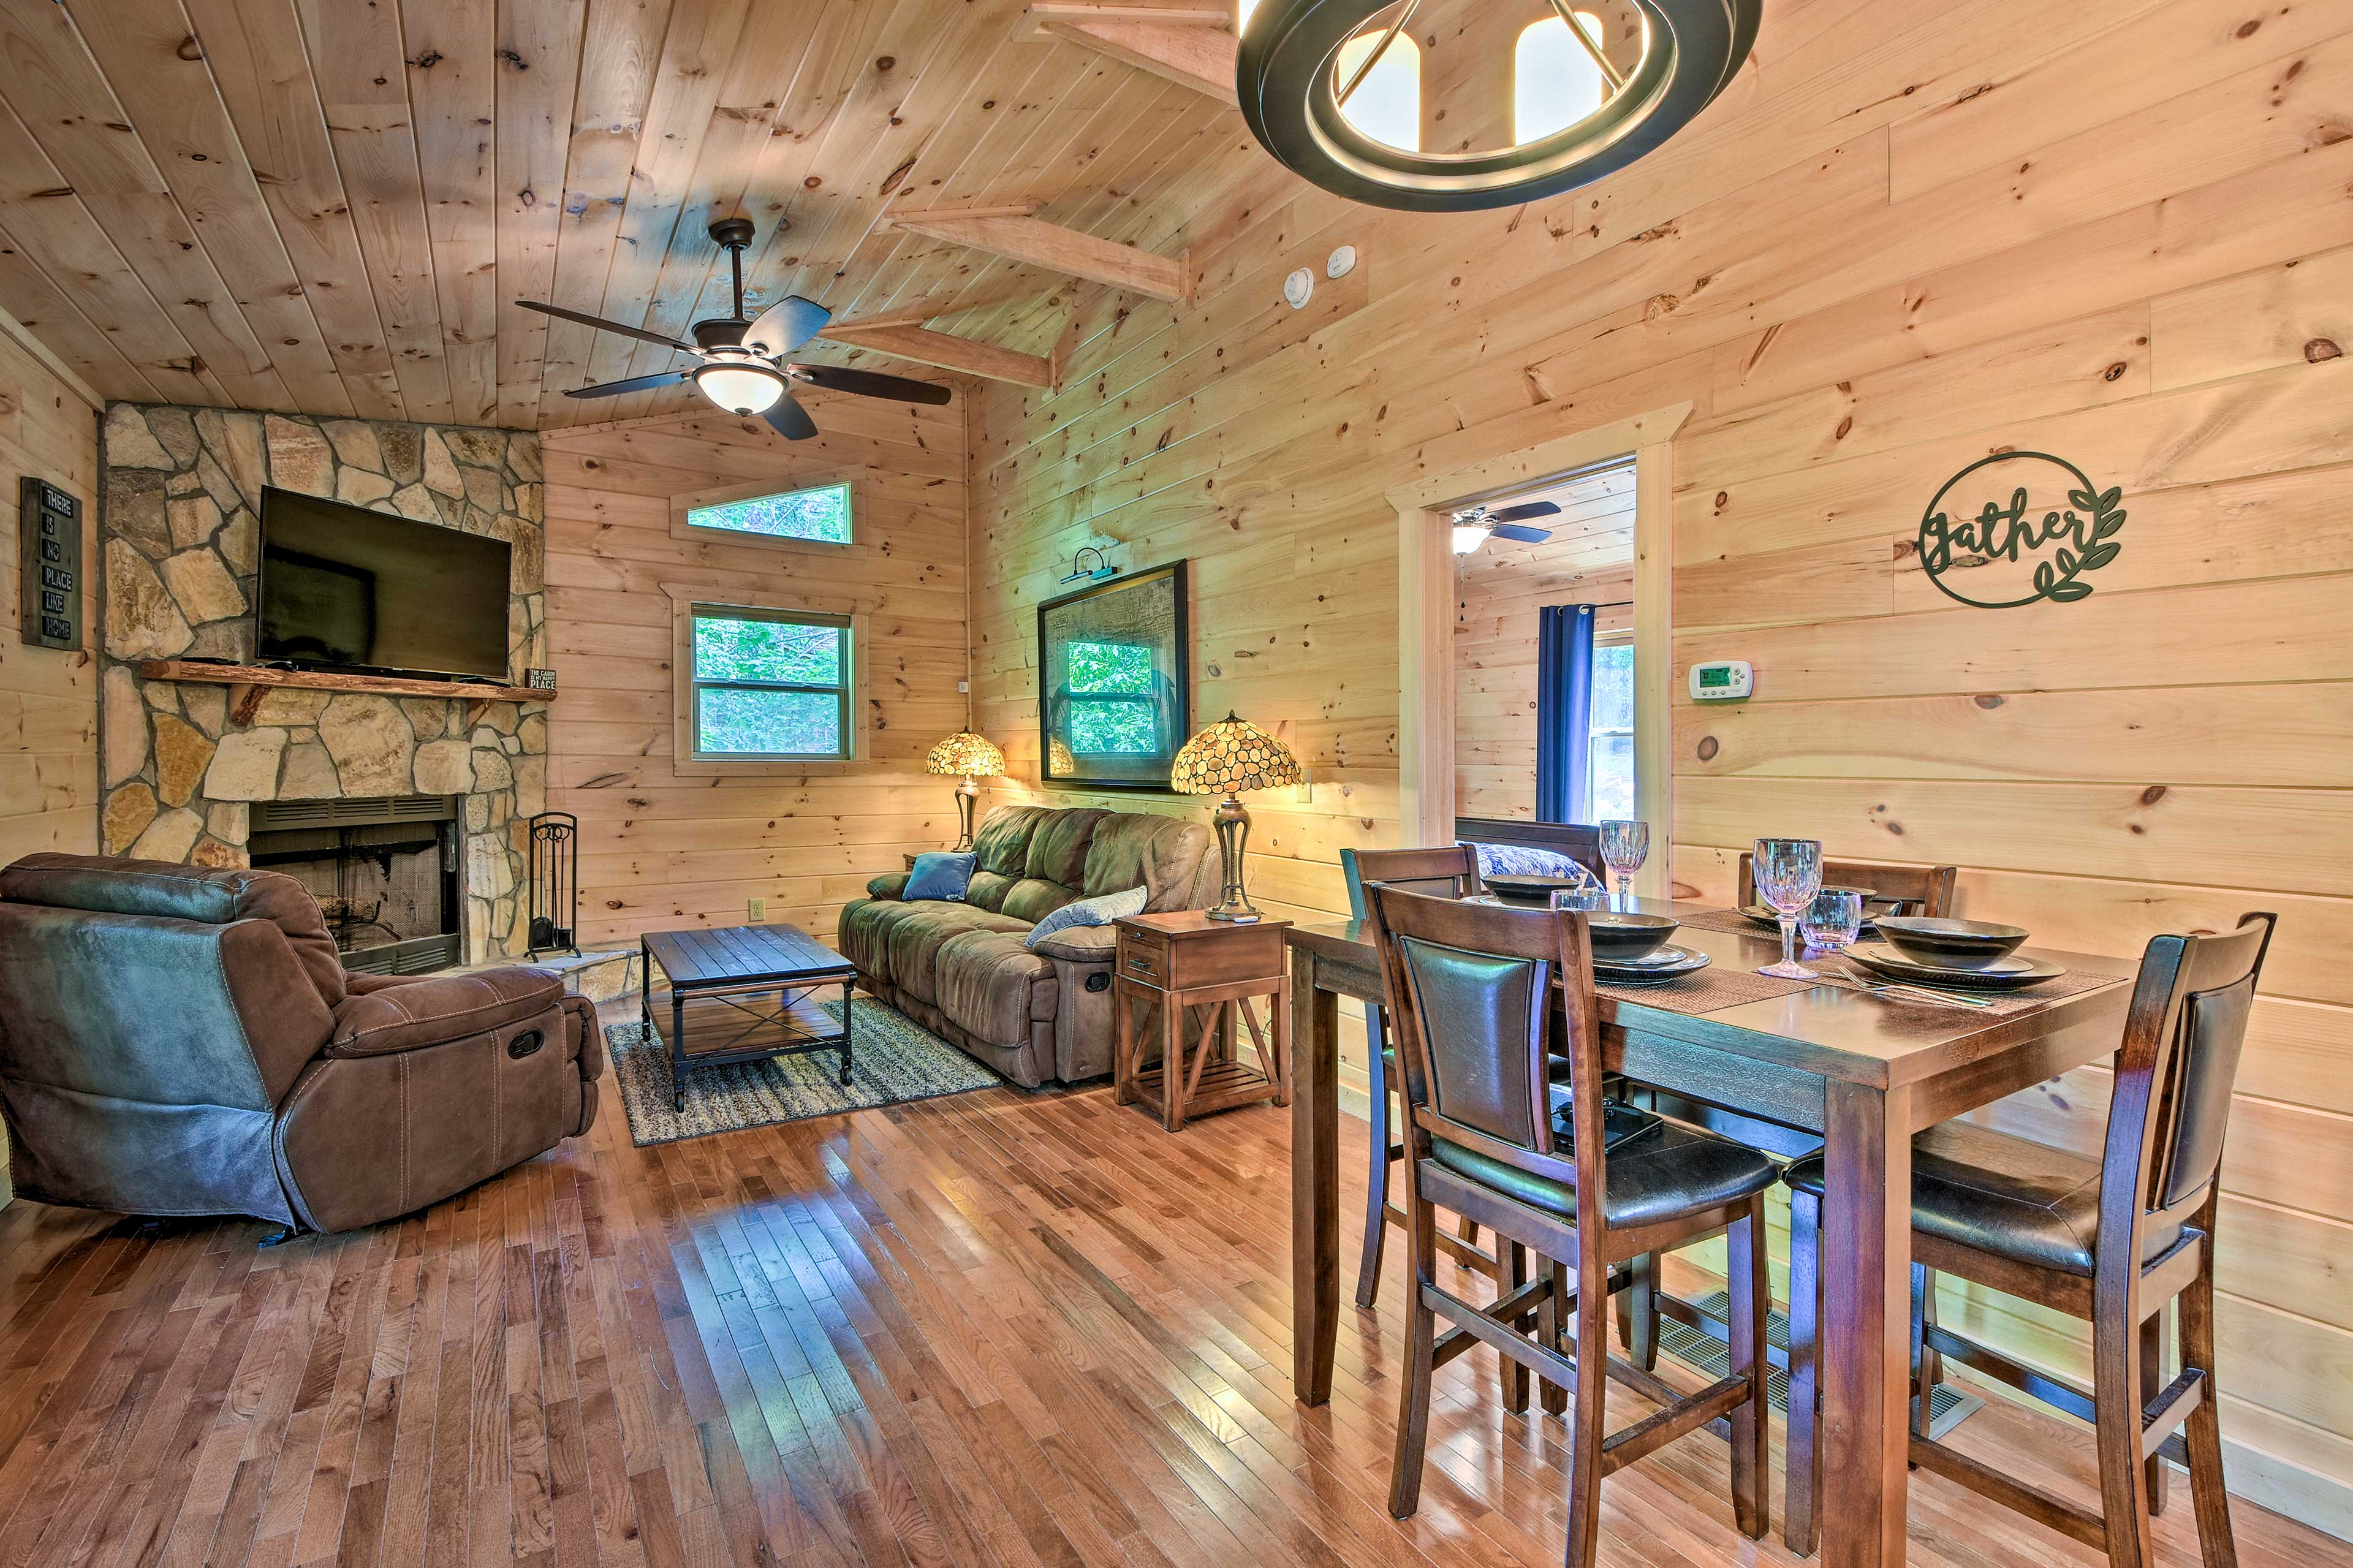 Newly built, the cabin is outfitted with brand new furnishings and fixtures.